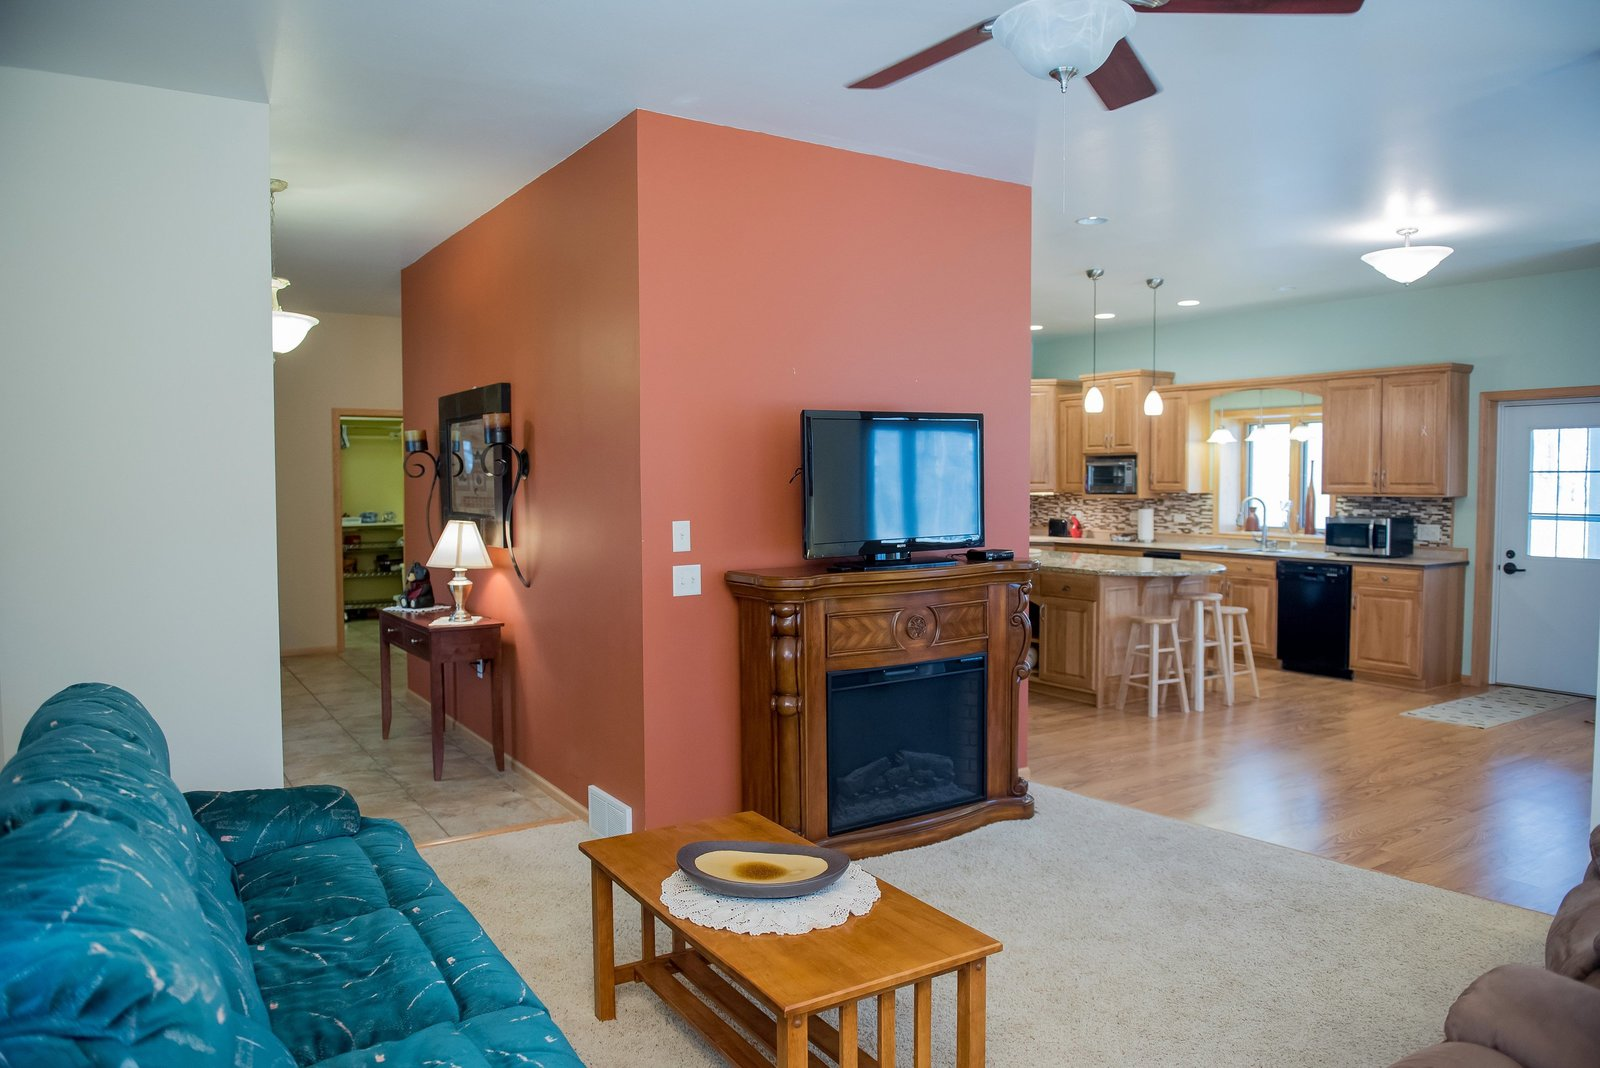 Kris Kandel Fargo real estate photographer helps realtors with online listing improvements.